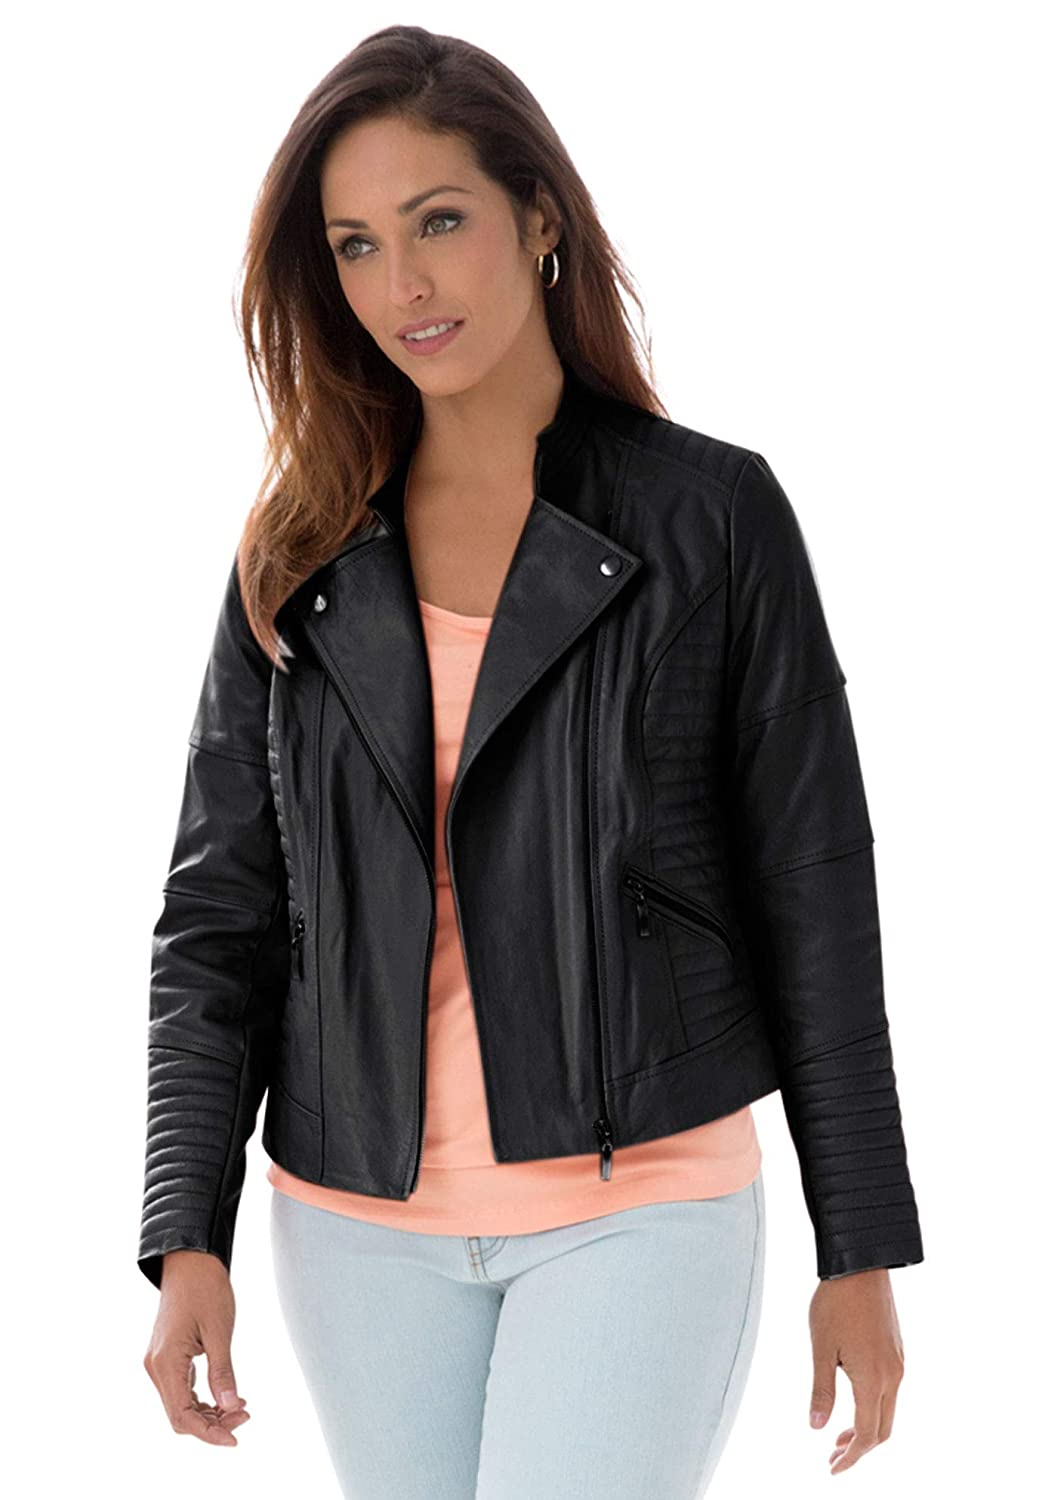 d91743c58fe Jessica London Women s Plus Size Quilted Leather Moto Jacket at Amazon  Women s Coats Shop